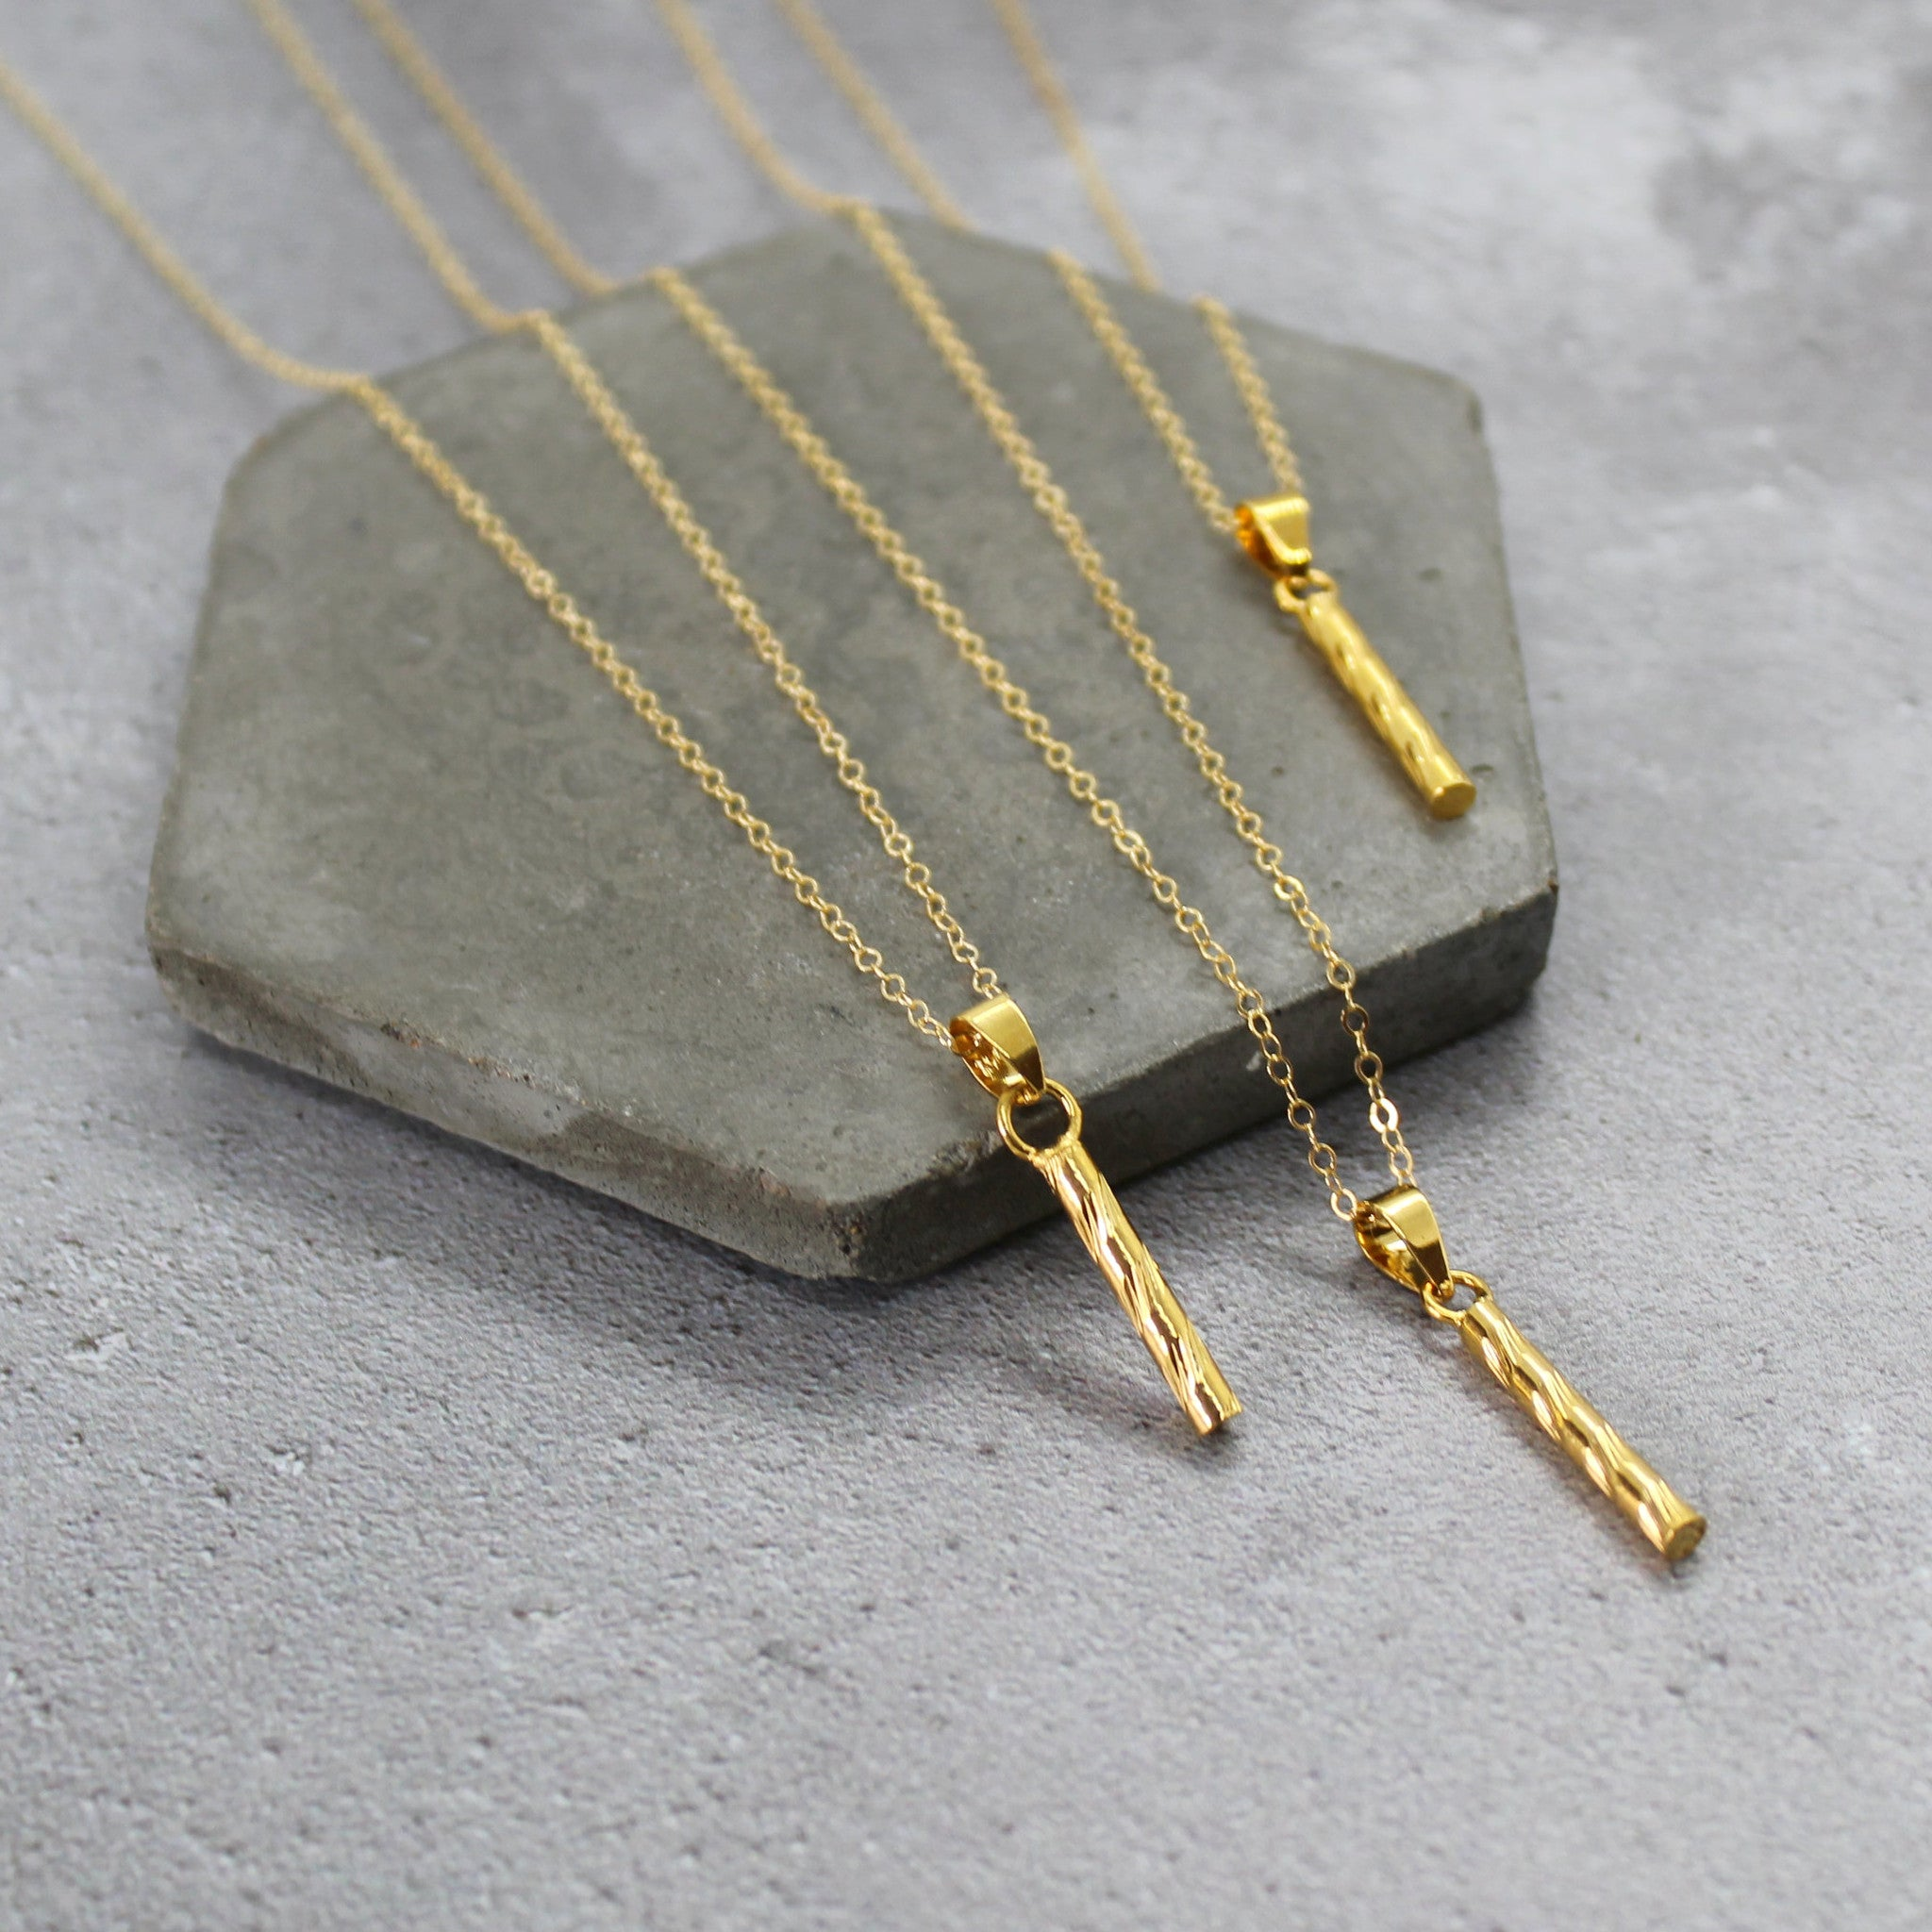 Gold filled bar necklace - Mara studio